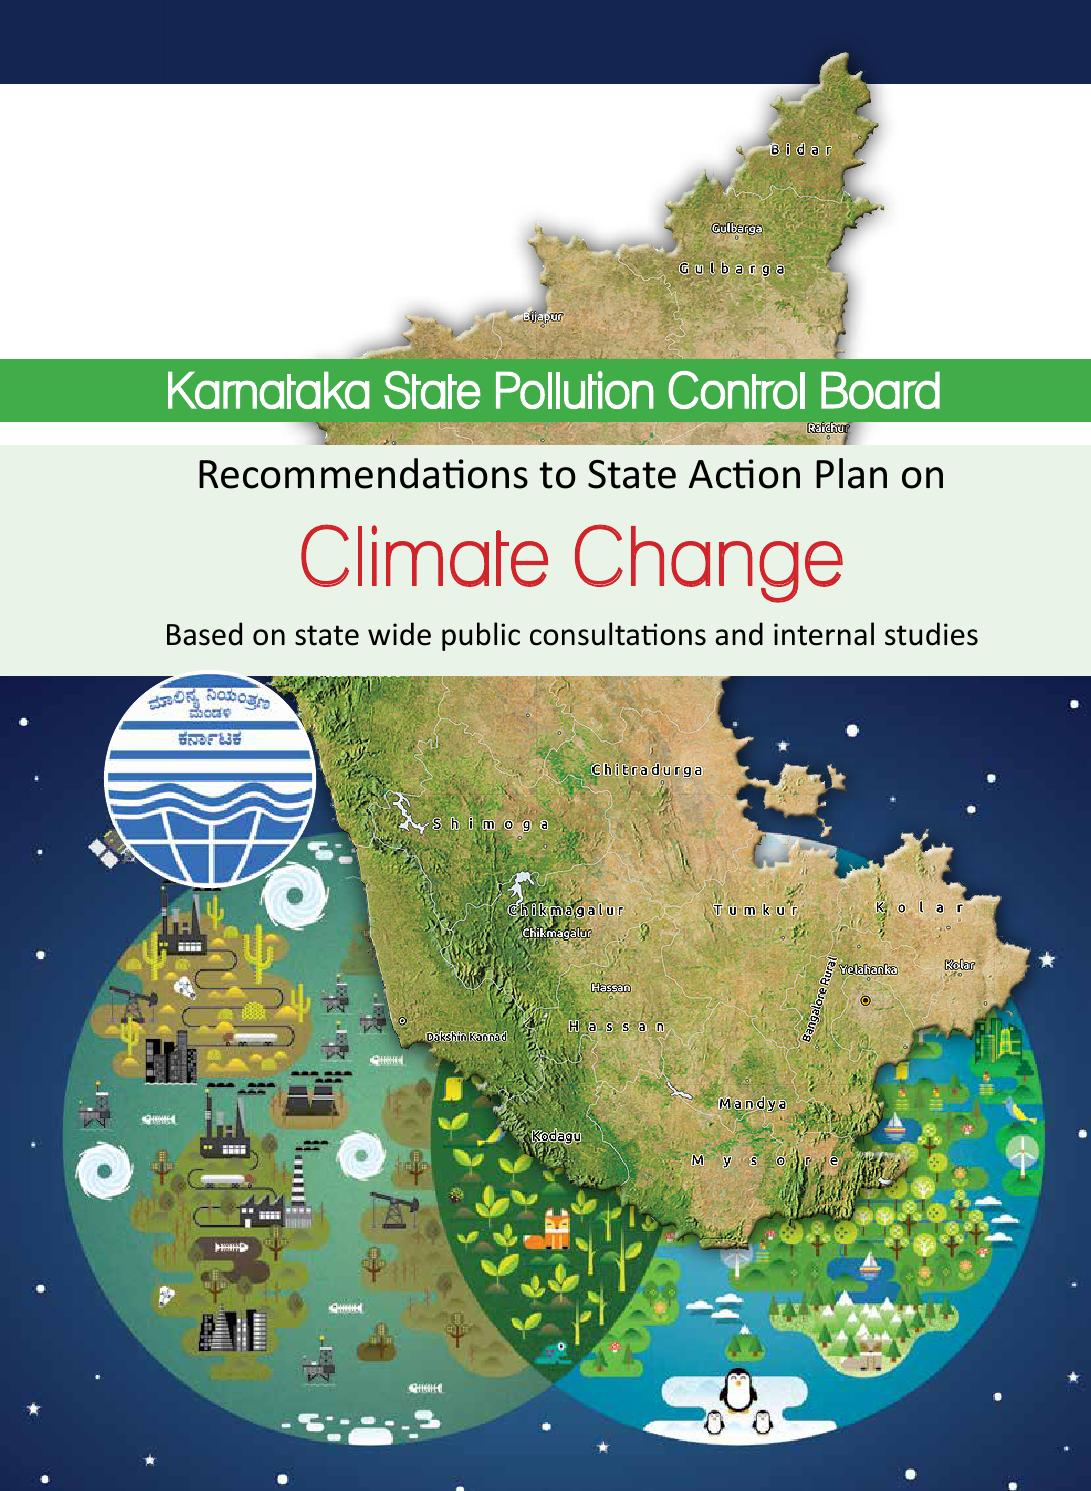 Recommendations to karnataka state action plan on climate change recommendations to karnataka state action plan on climate change by beluru sudarshana issuu biocorpaavc Images